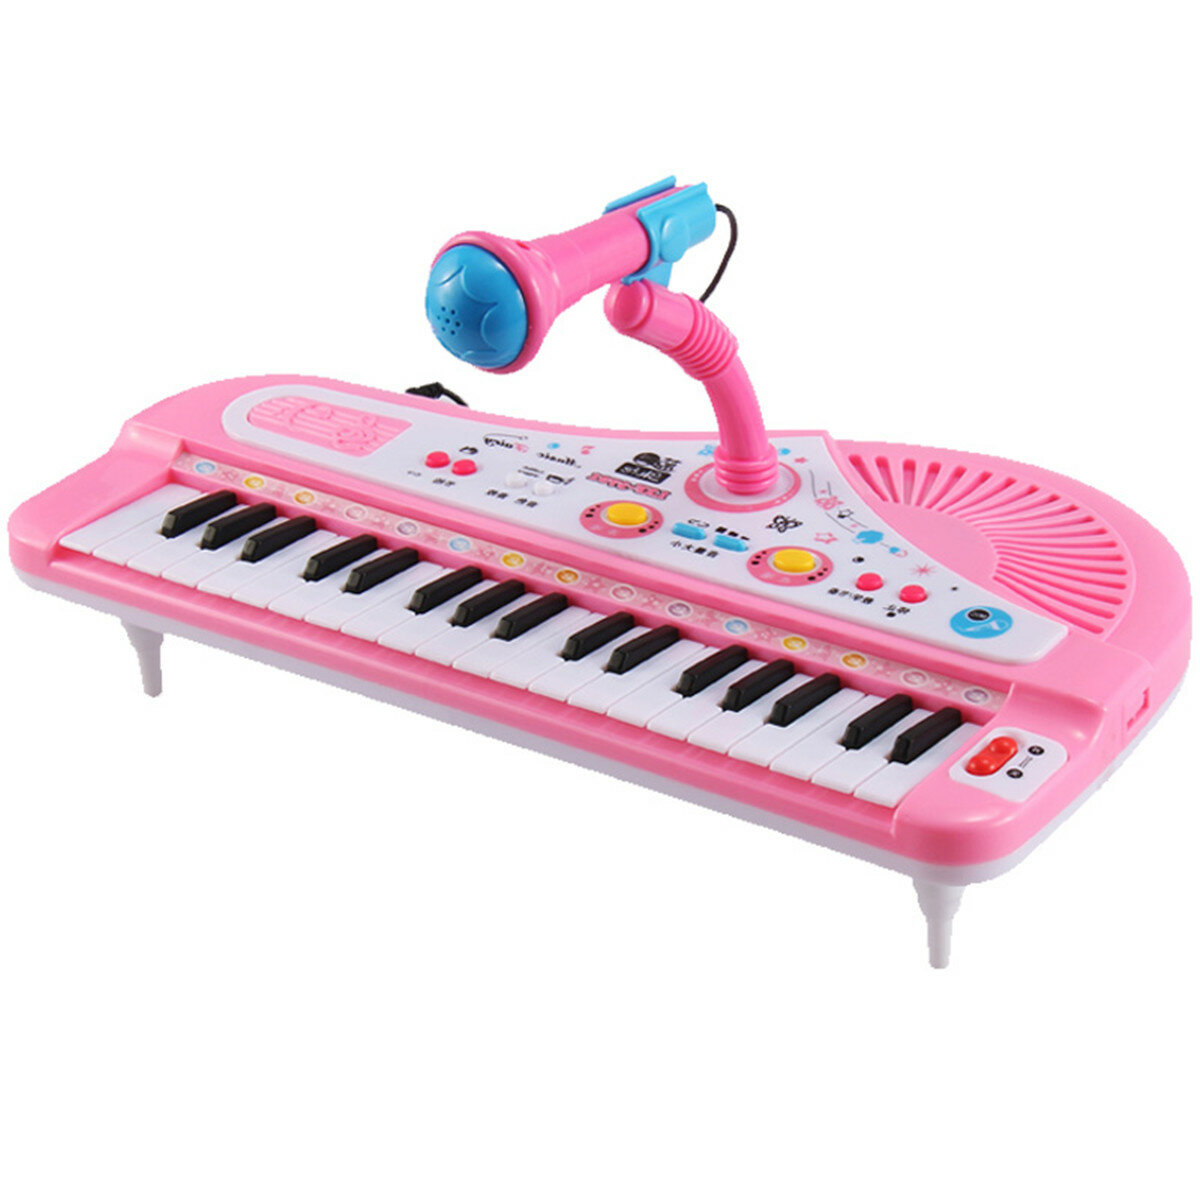 37 Key Kids Electronic Keyboard Piano Musical Toy with Microphone for  Children's Toys